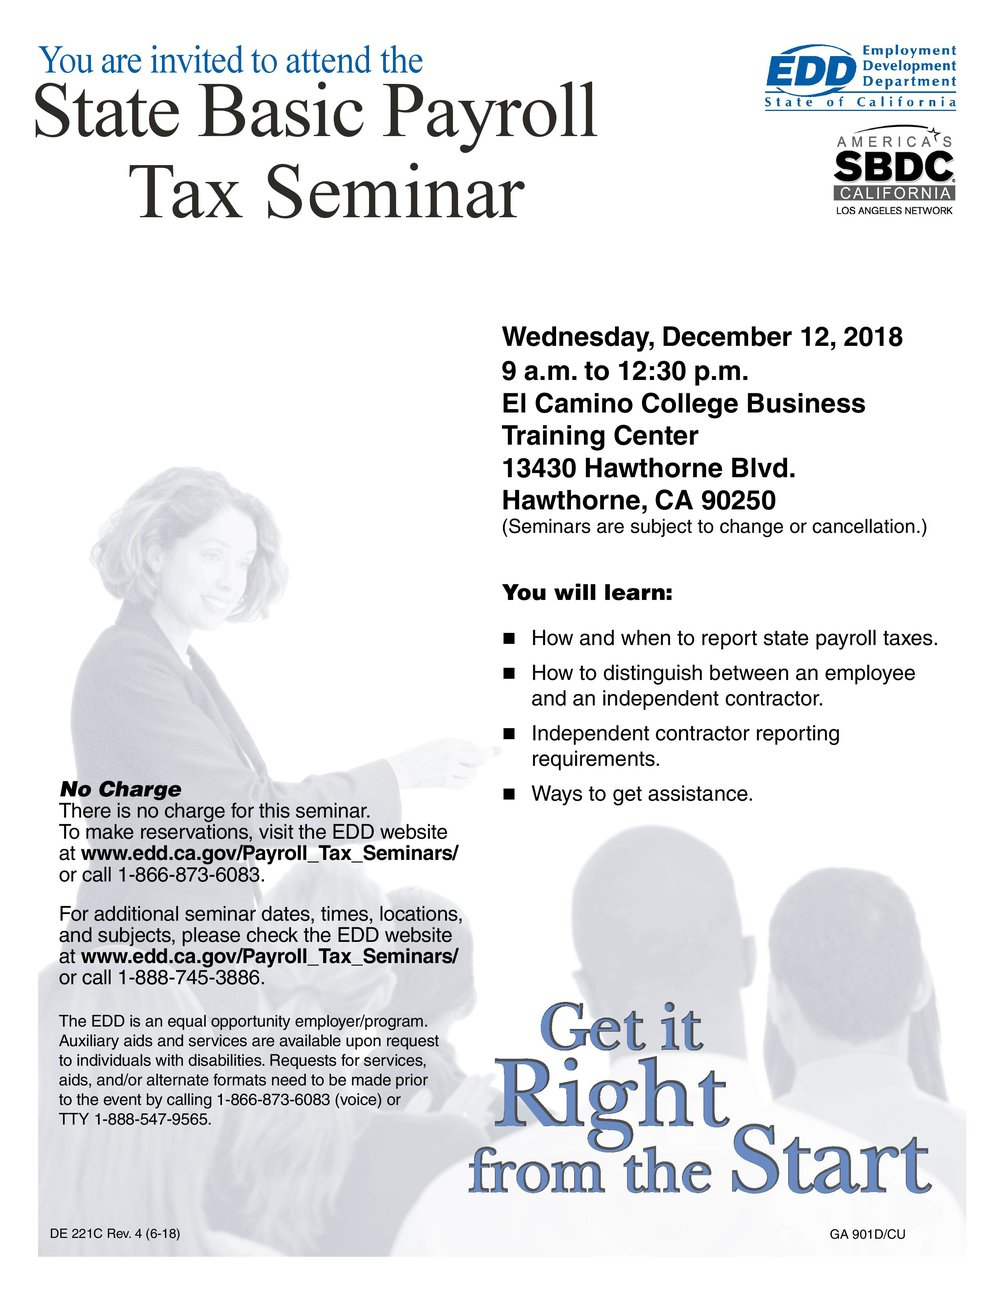 State basic payroll tax seminar - December 12th, 2018